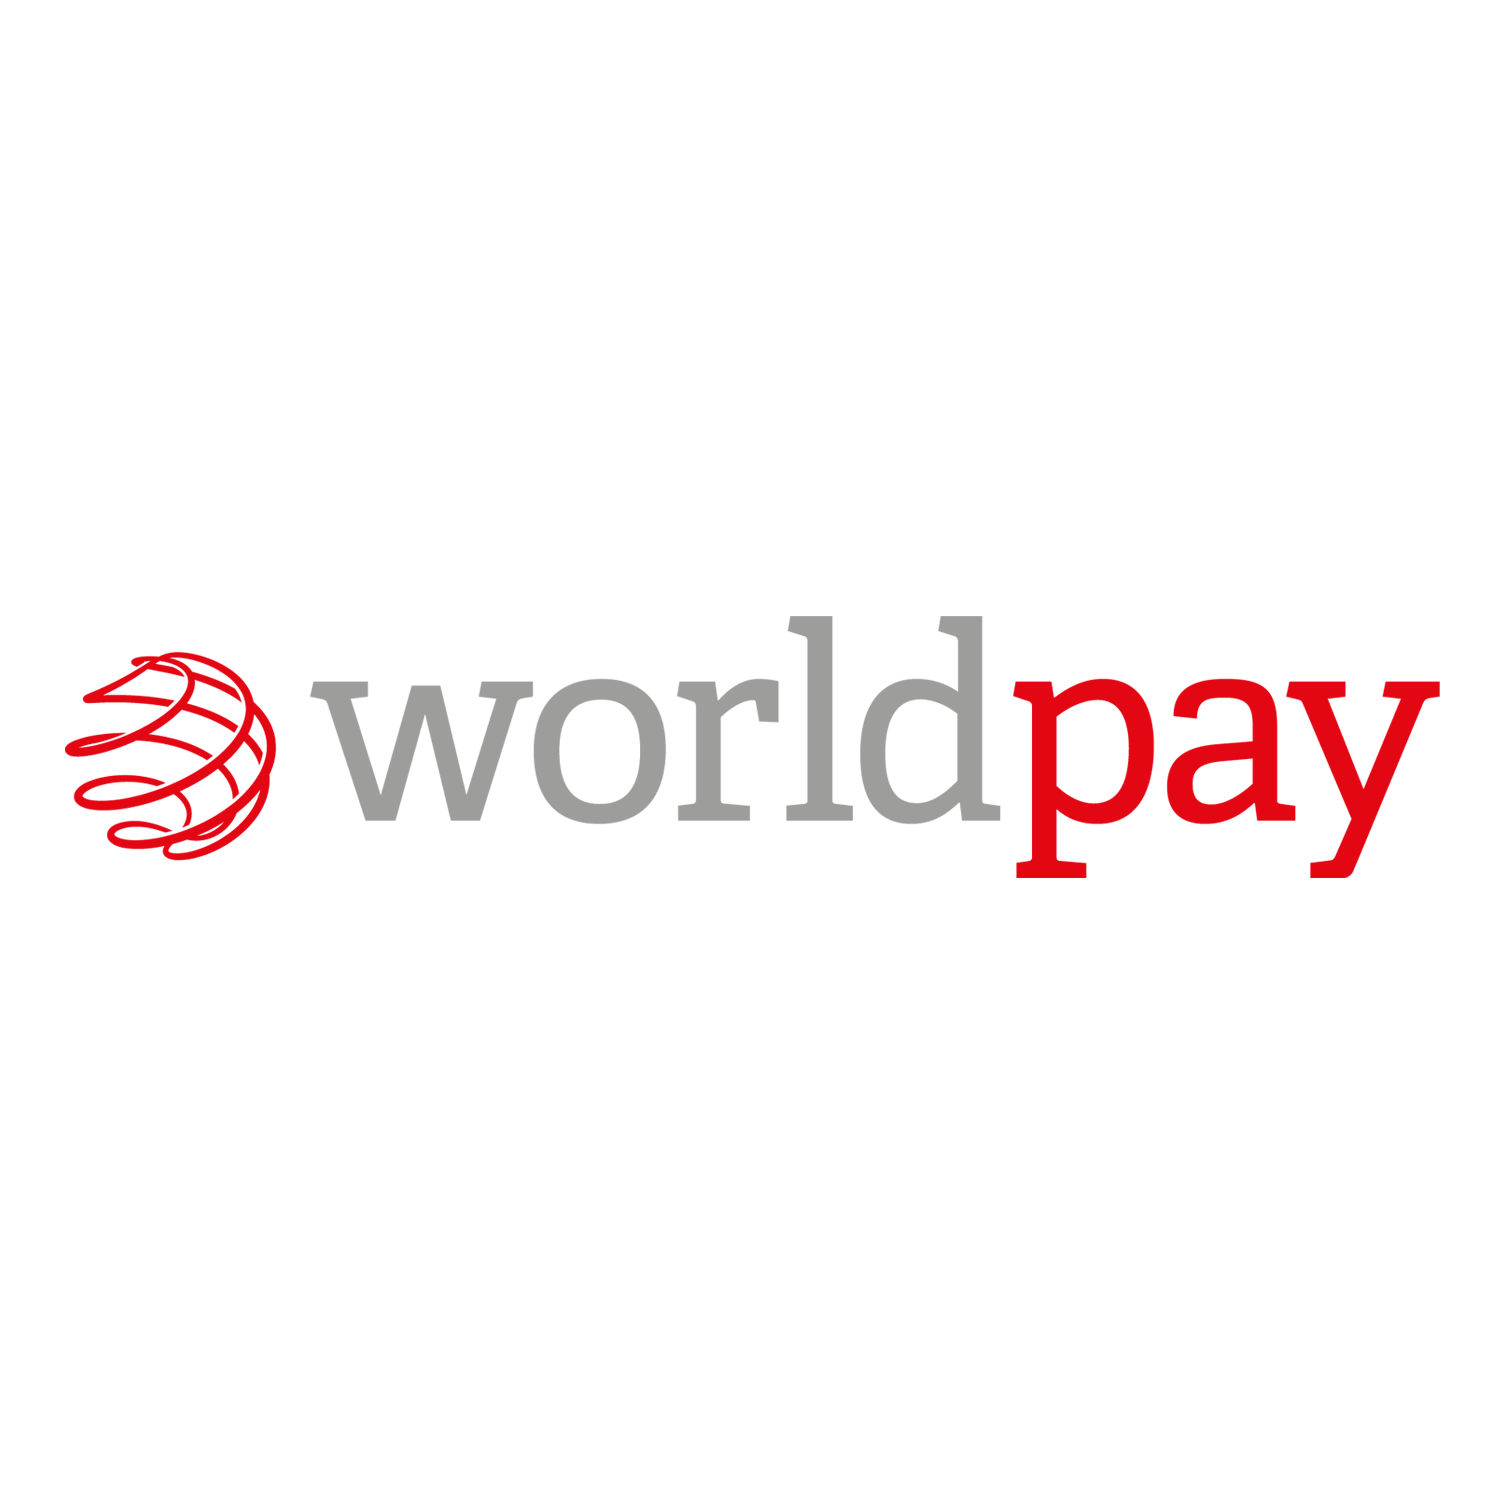 worldpay-logo.png